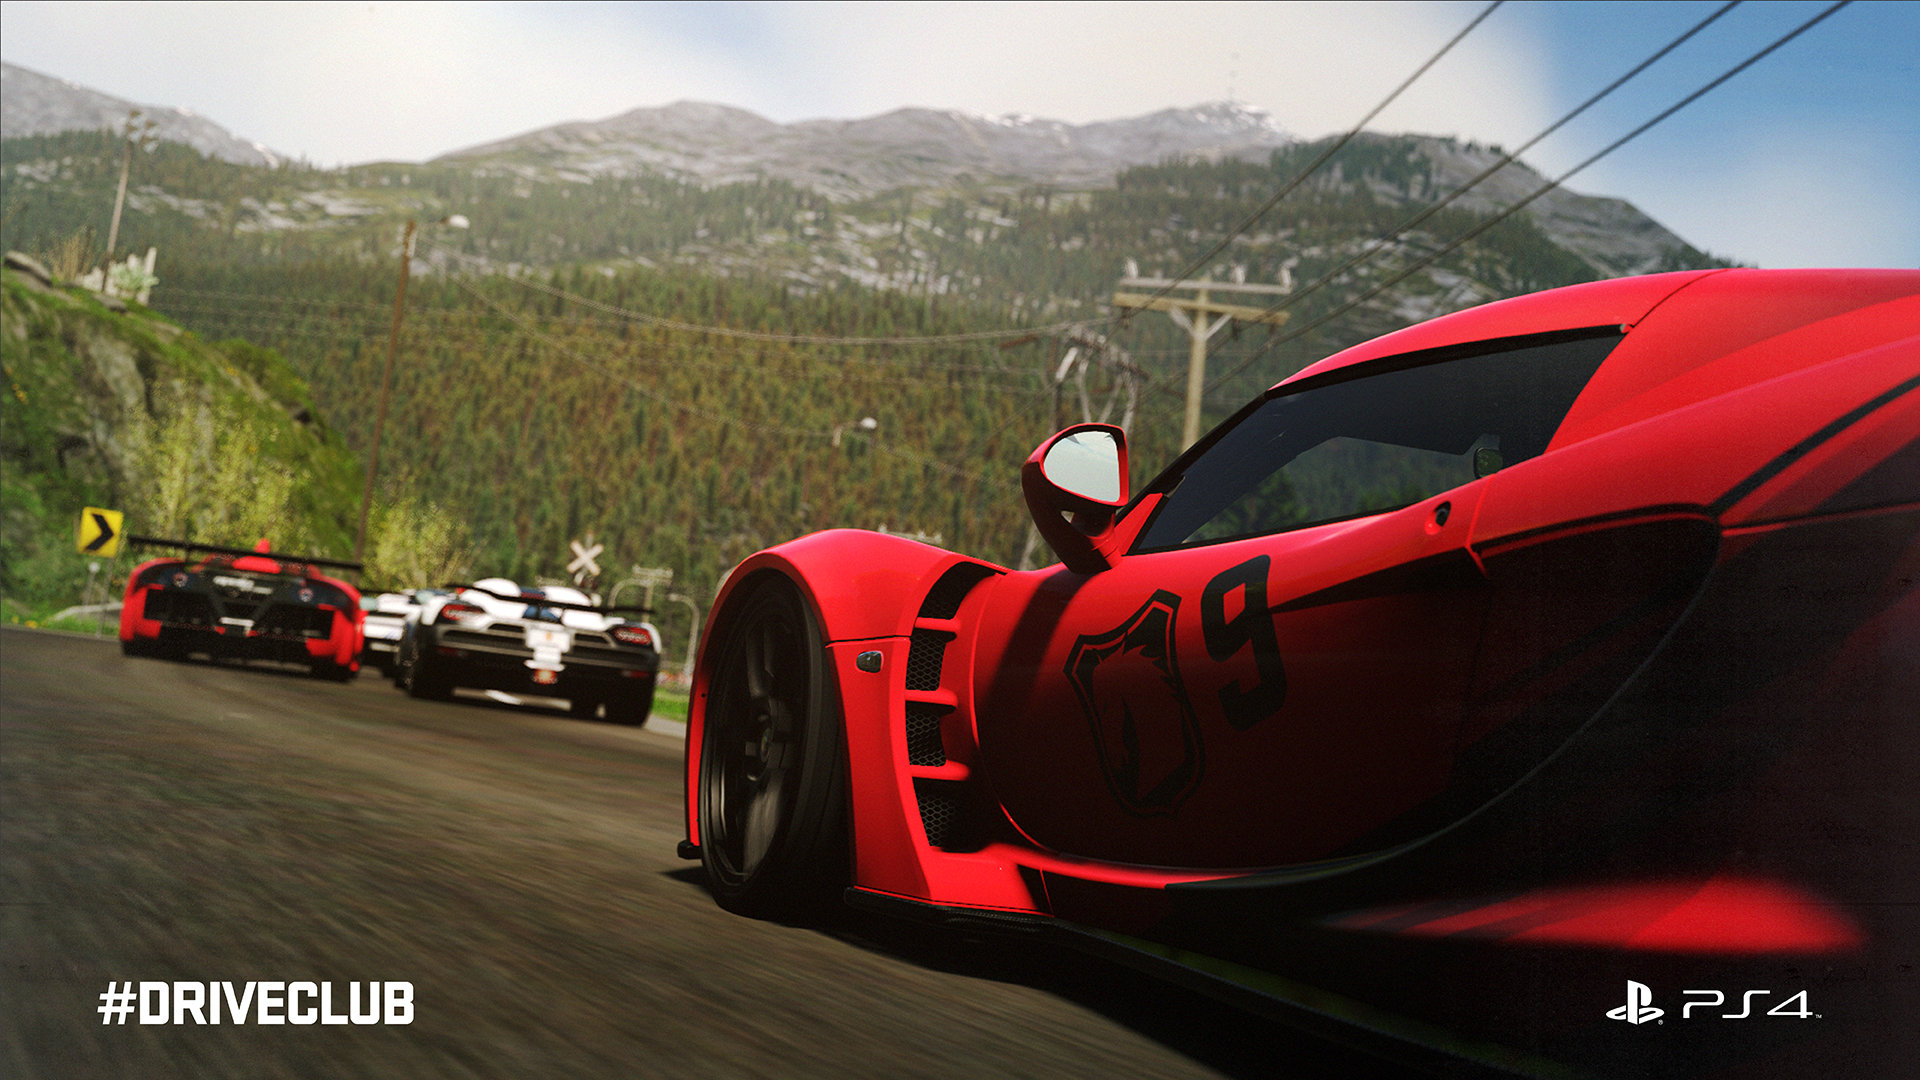 DRIVECLUB™ Game | PS4 - PlayStation on wasteland 2 map size, test drive unlimited 2 map size, burnout paradise map size, star citizen map size, forza horizon map size, the crew map size, destiny map size, minecraft map size,